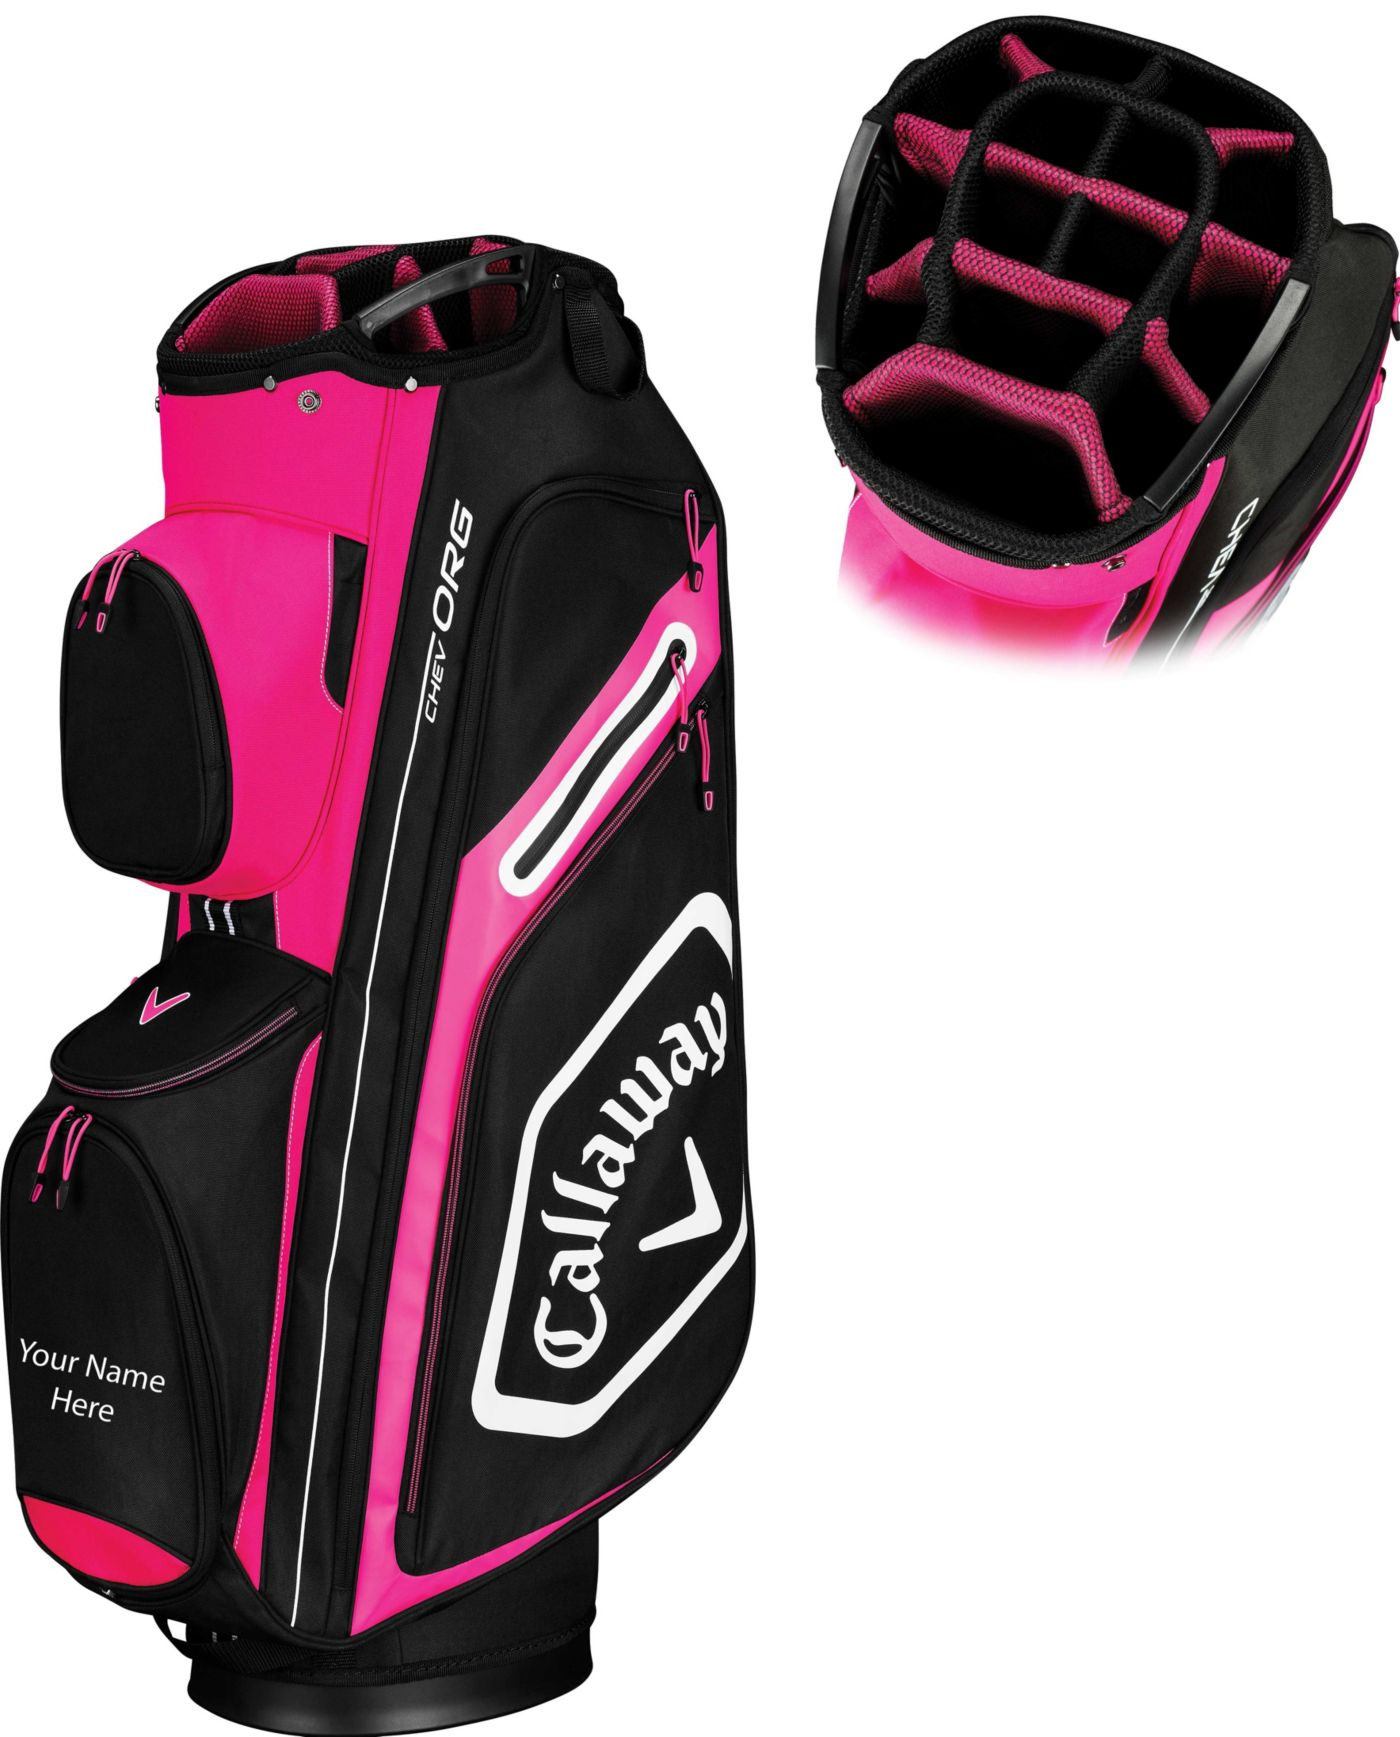 Callaway Women's 2019 Chev Org Personalized Cart Golf Bag